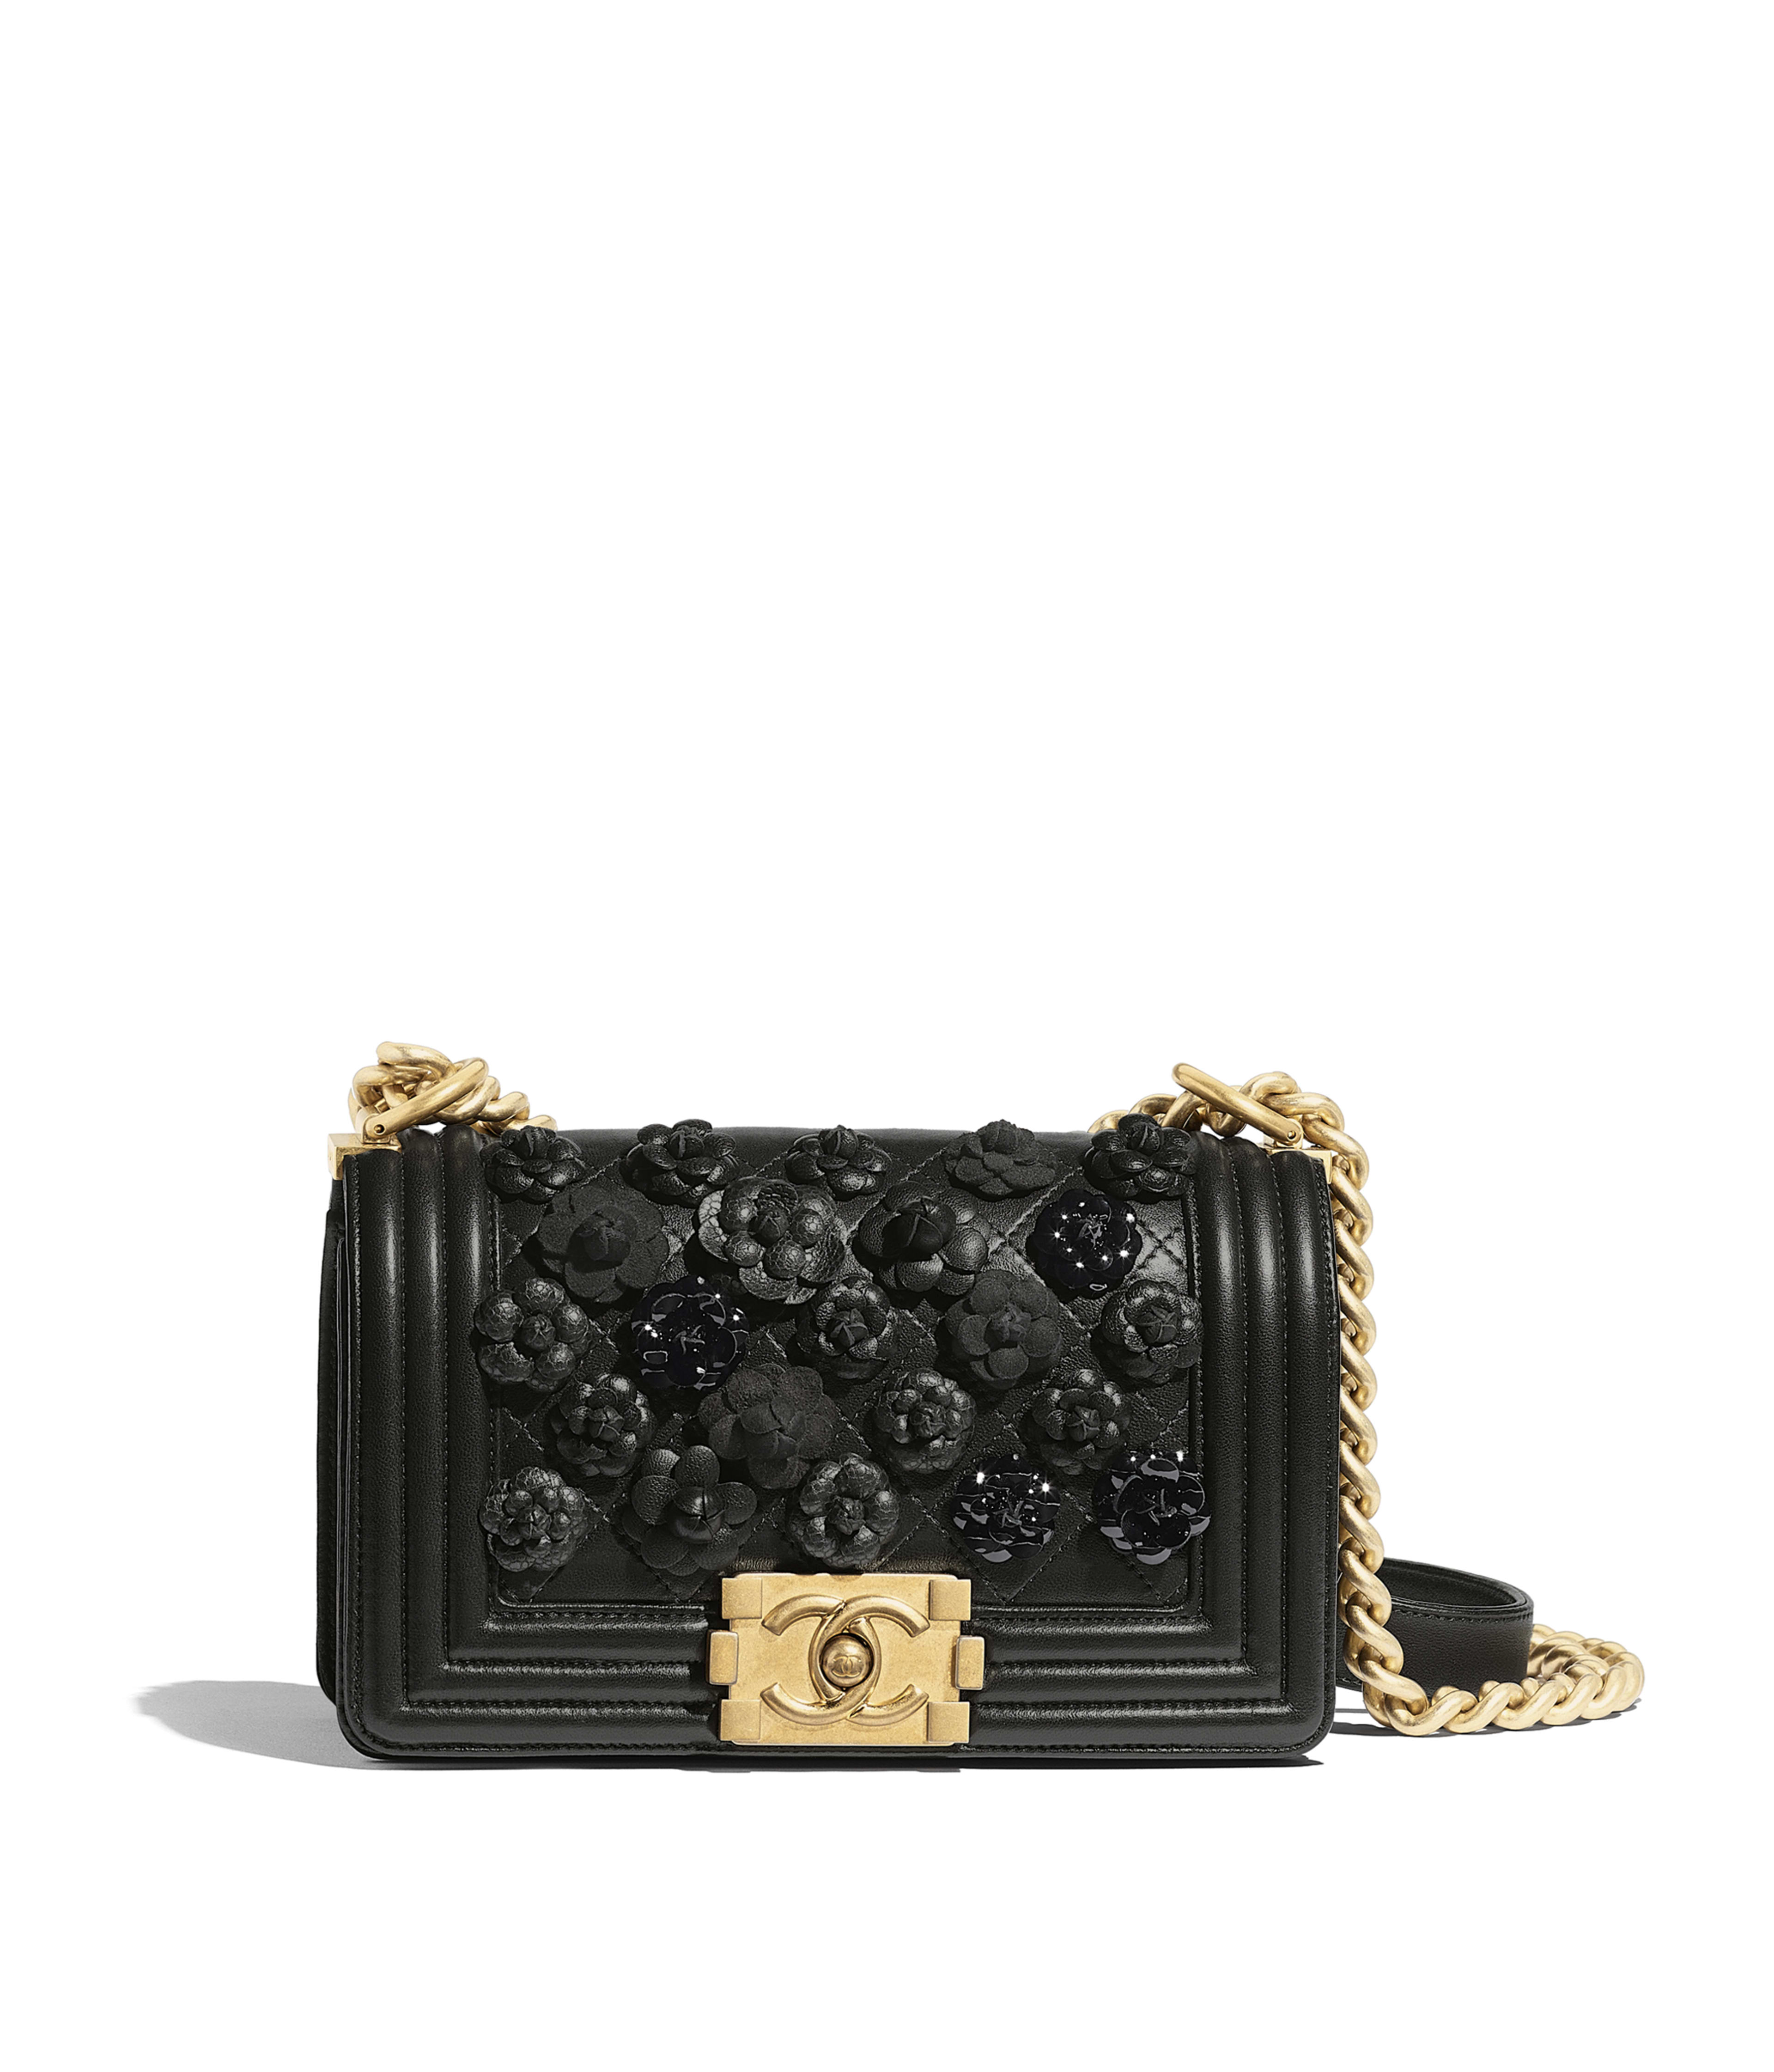 Small BOY CHANEL Handbag Embroidered Lambskin   Gold-Tone Metal, Black Ref.  A67085B0023194305 461228b56e